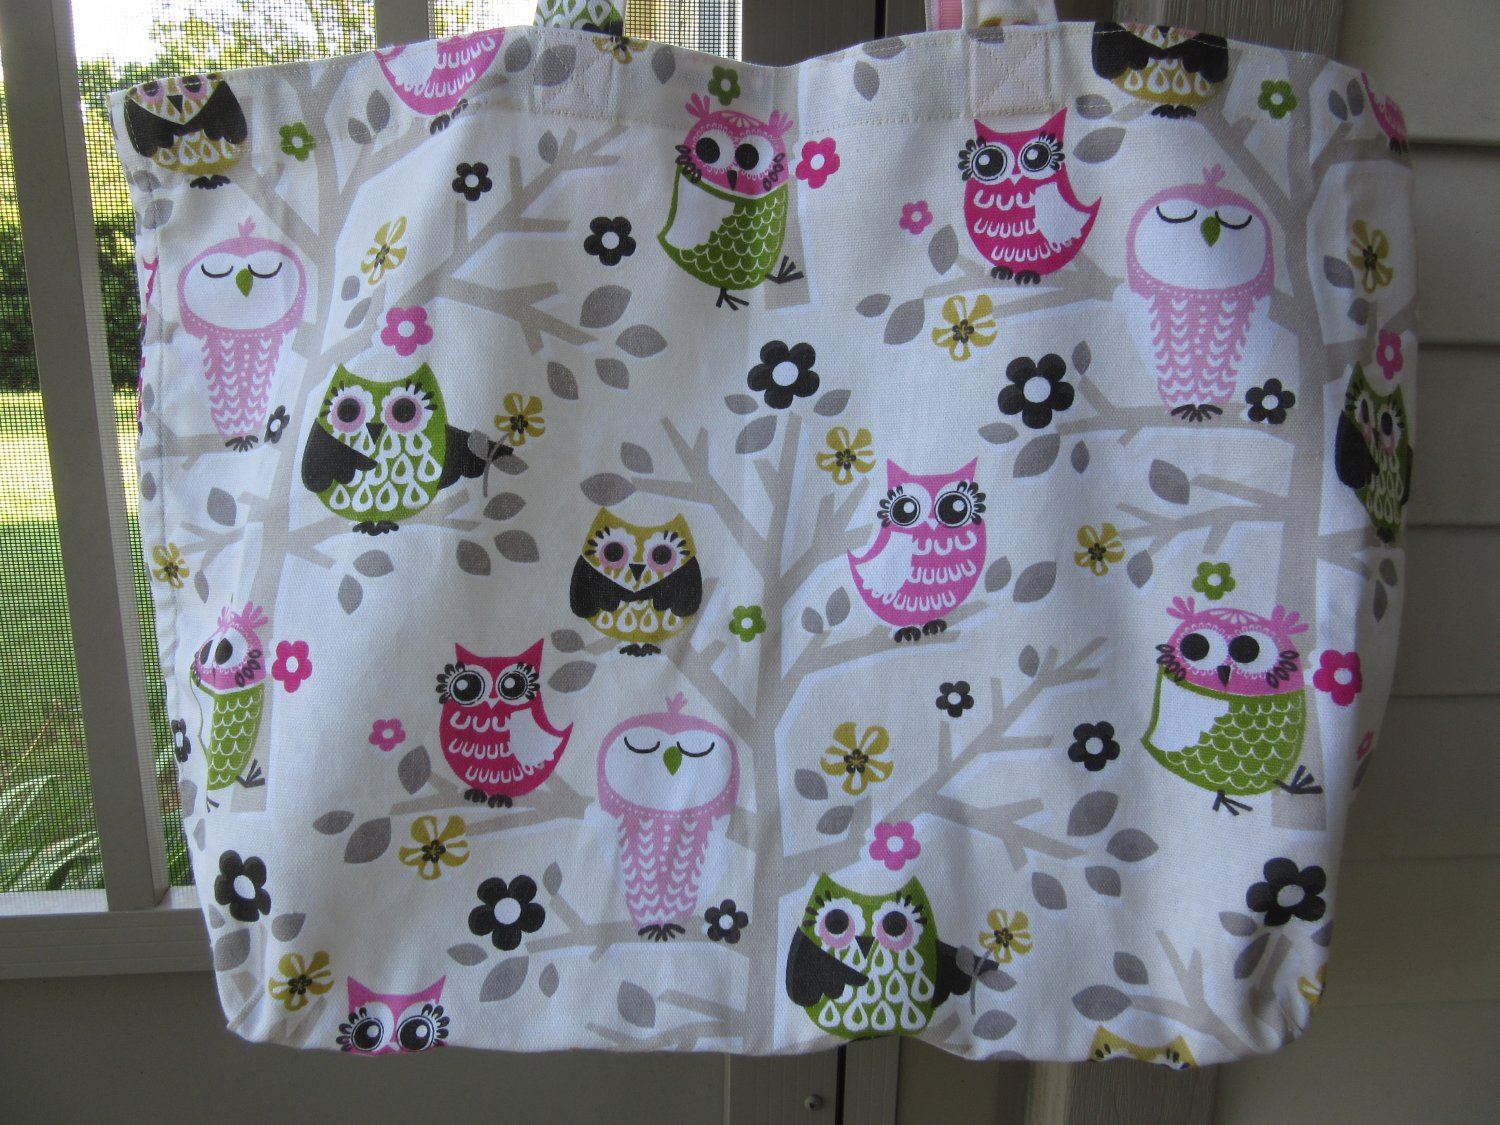 NEW Large Owls Folding Eco Friendly Tote Bag with Cell Phone Pocket